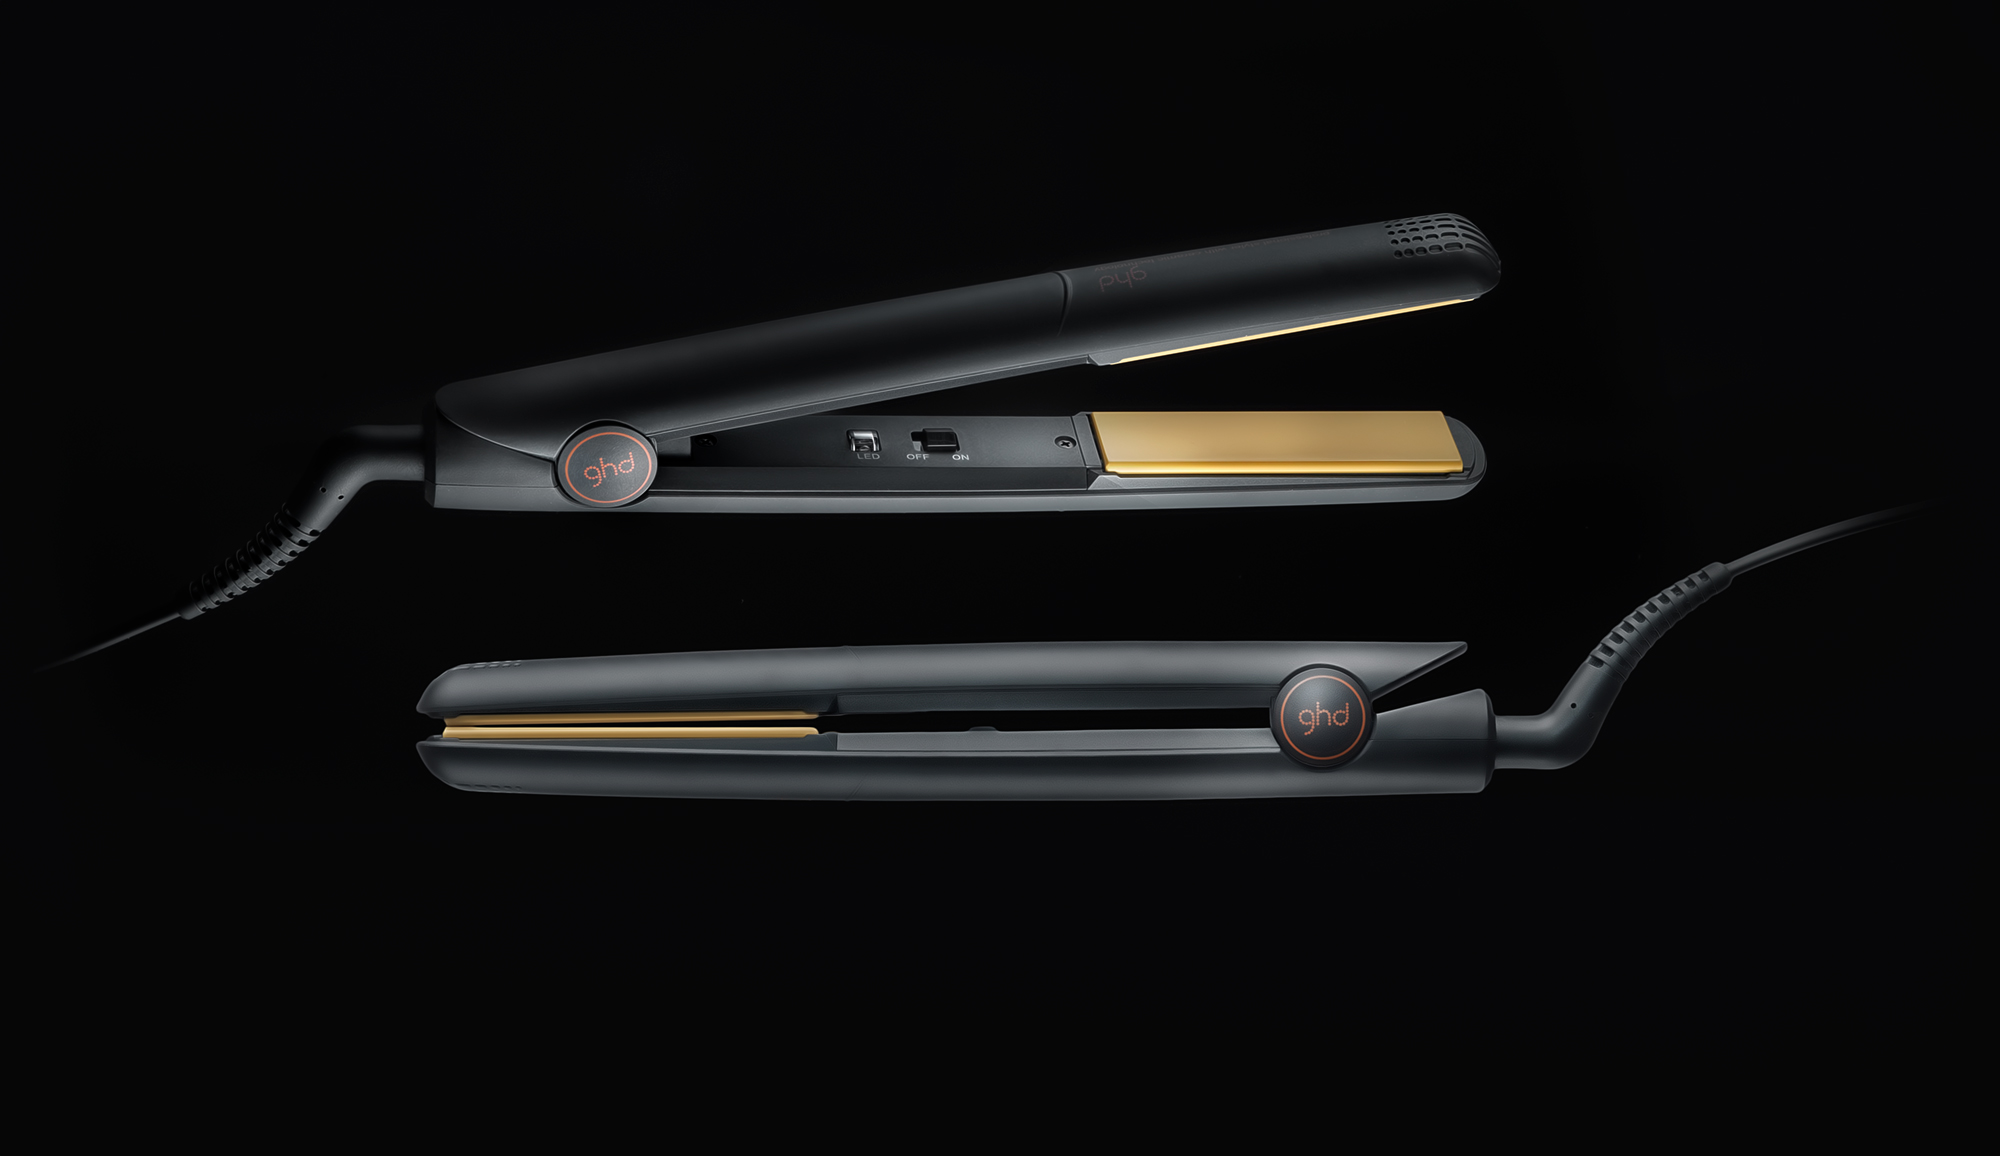 DAVID-LUDN_GHD-low-res-Product-shot.jpg